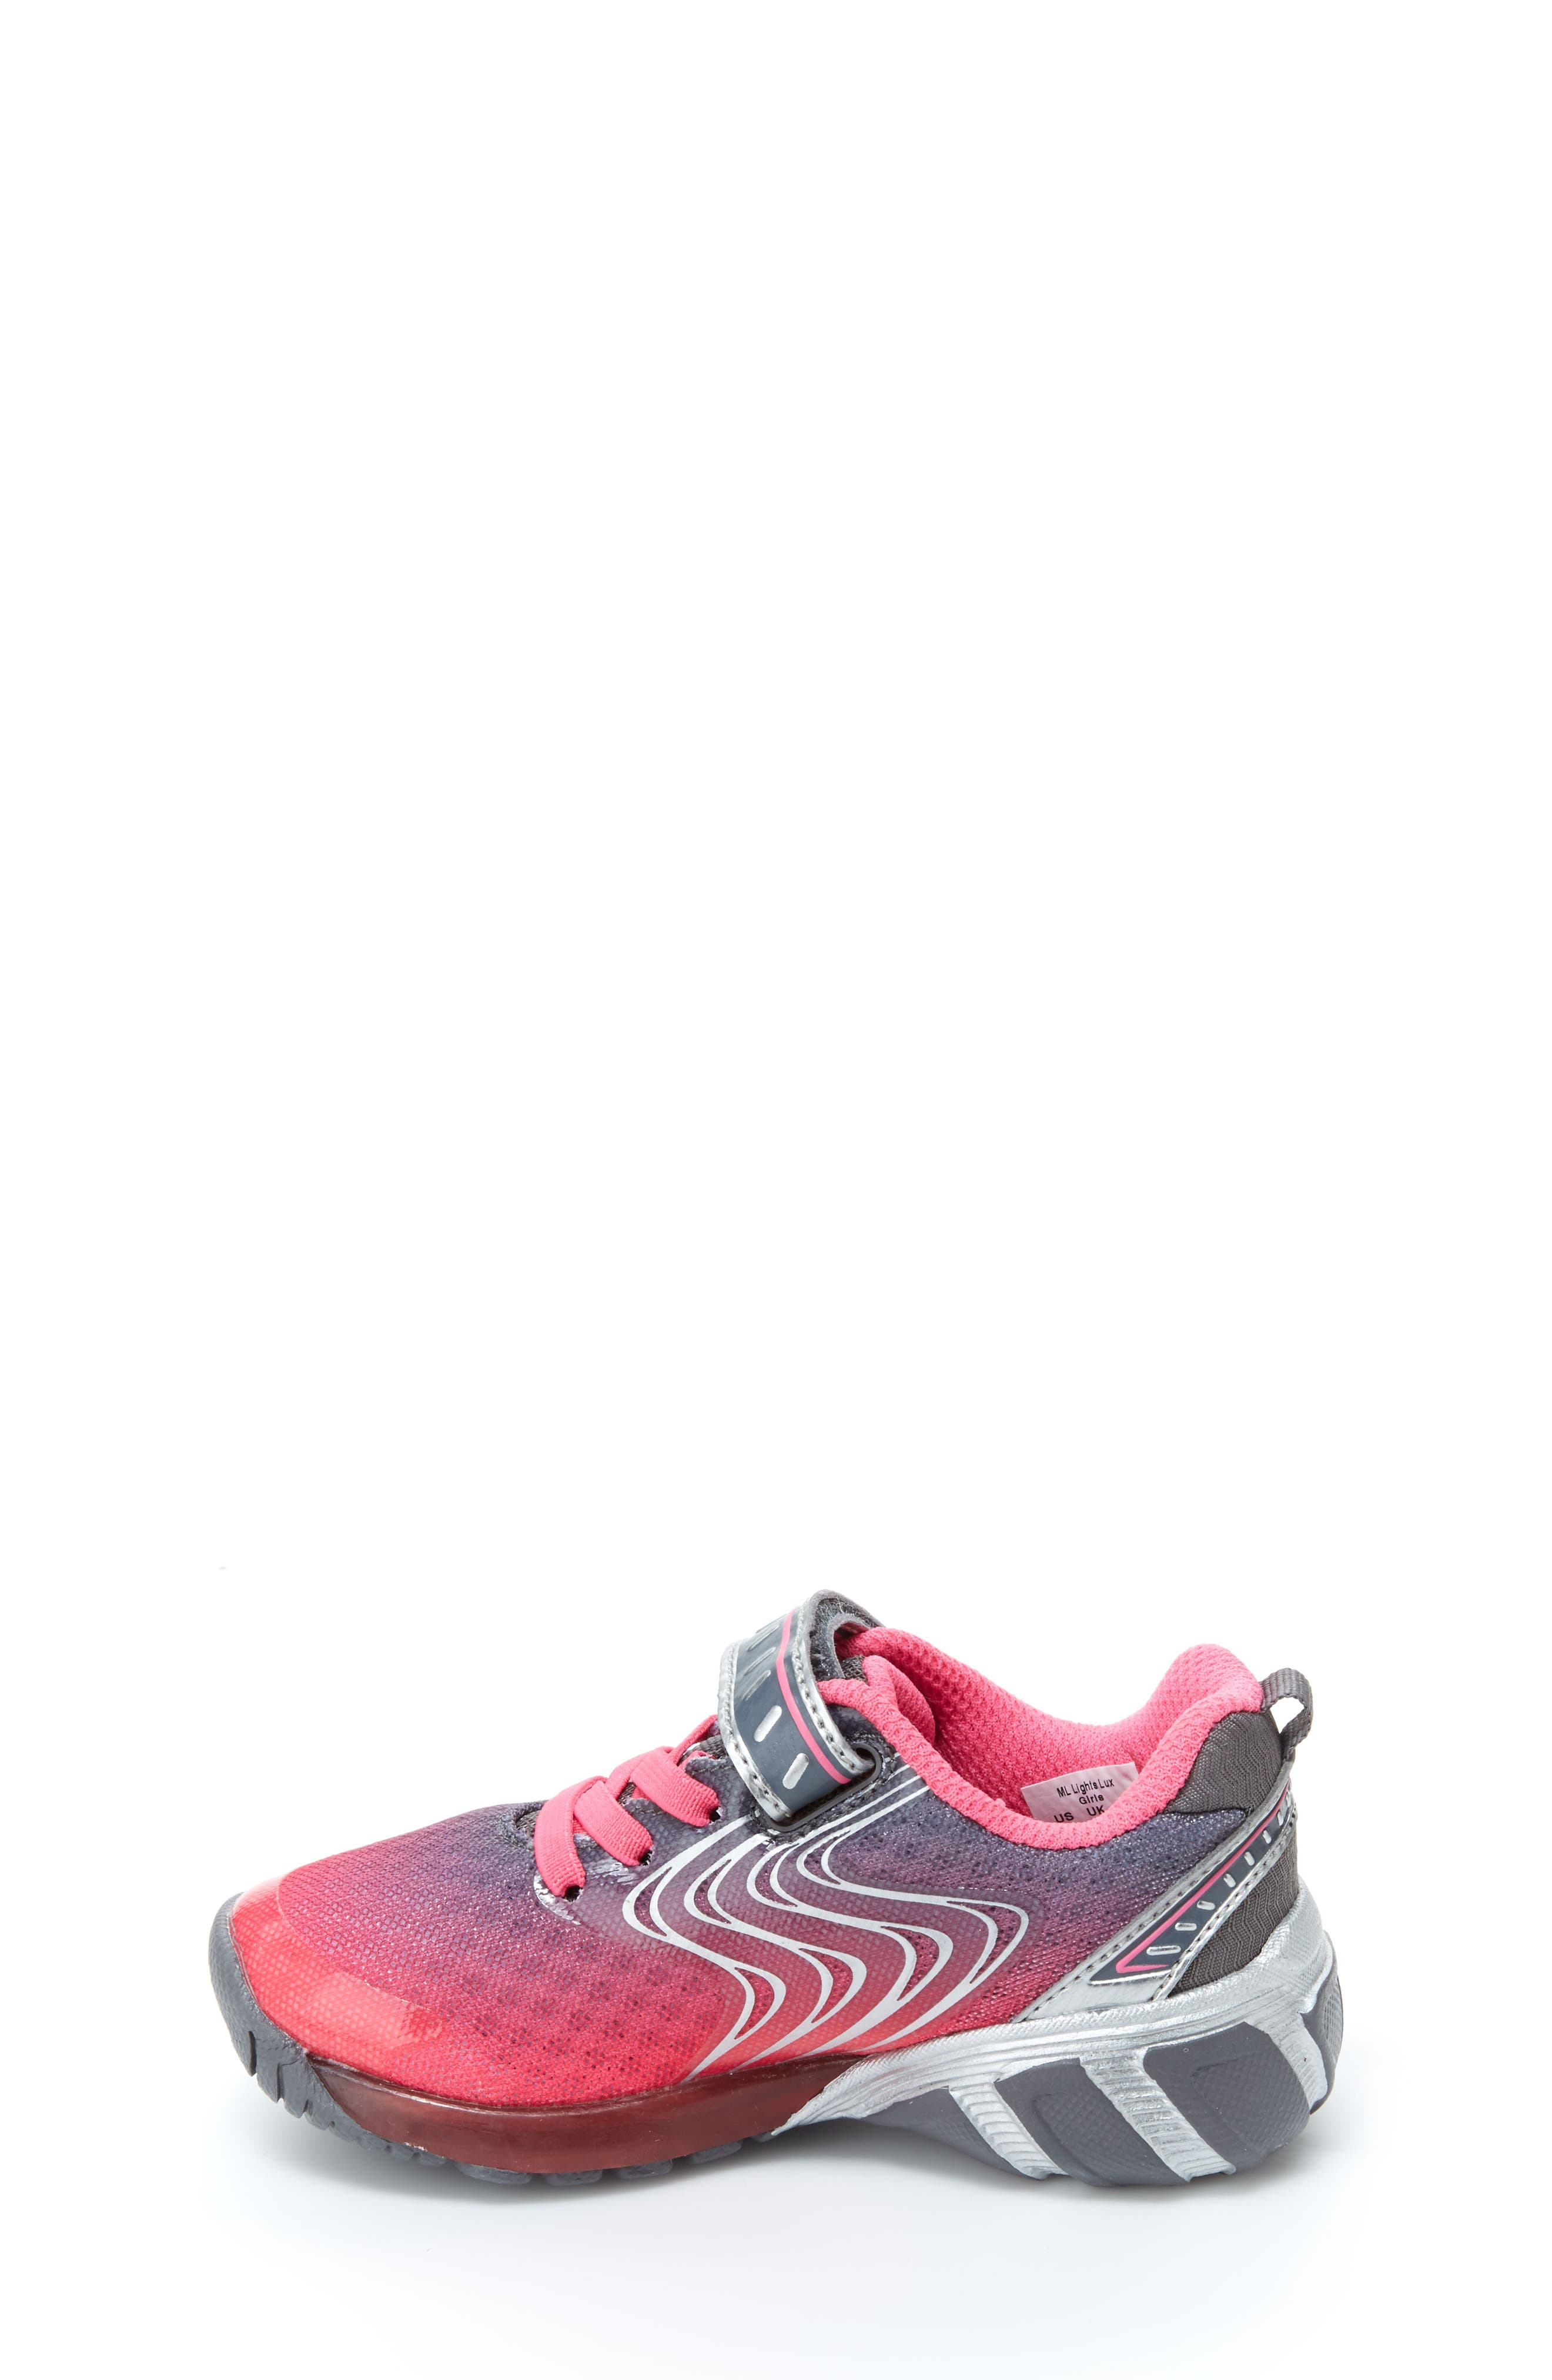 Lights Lux Light-Up Sneaker,                             Alternate thumbnail 9, color,                             PINK SYNTHETIC/ TEXTILE